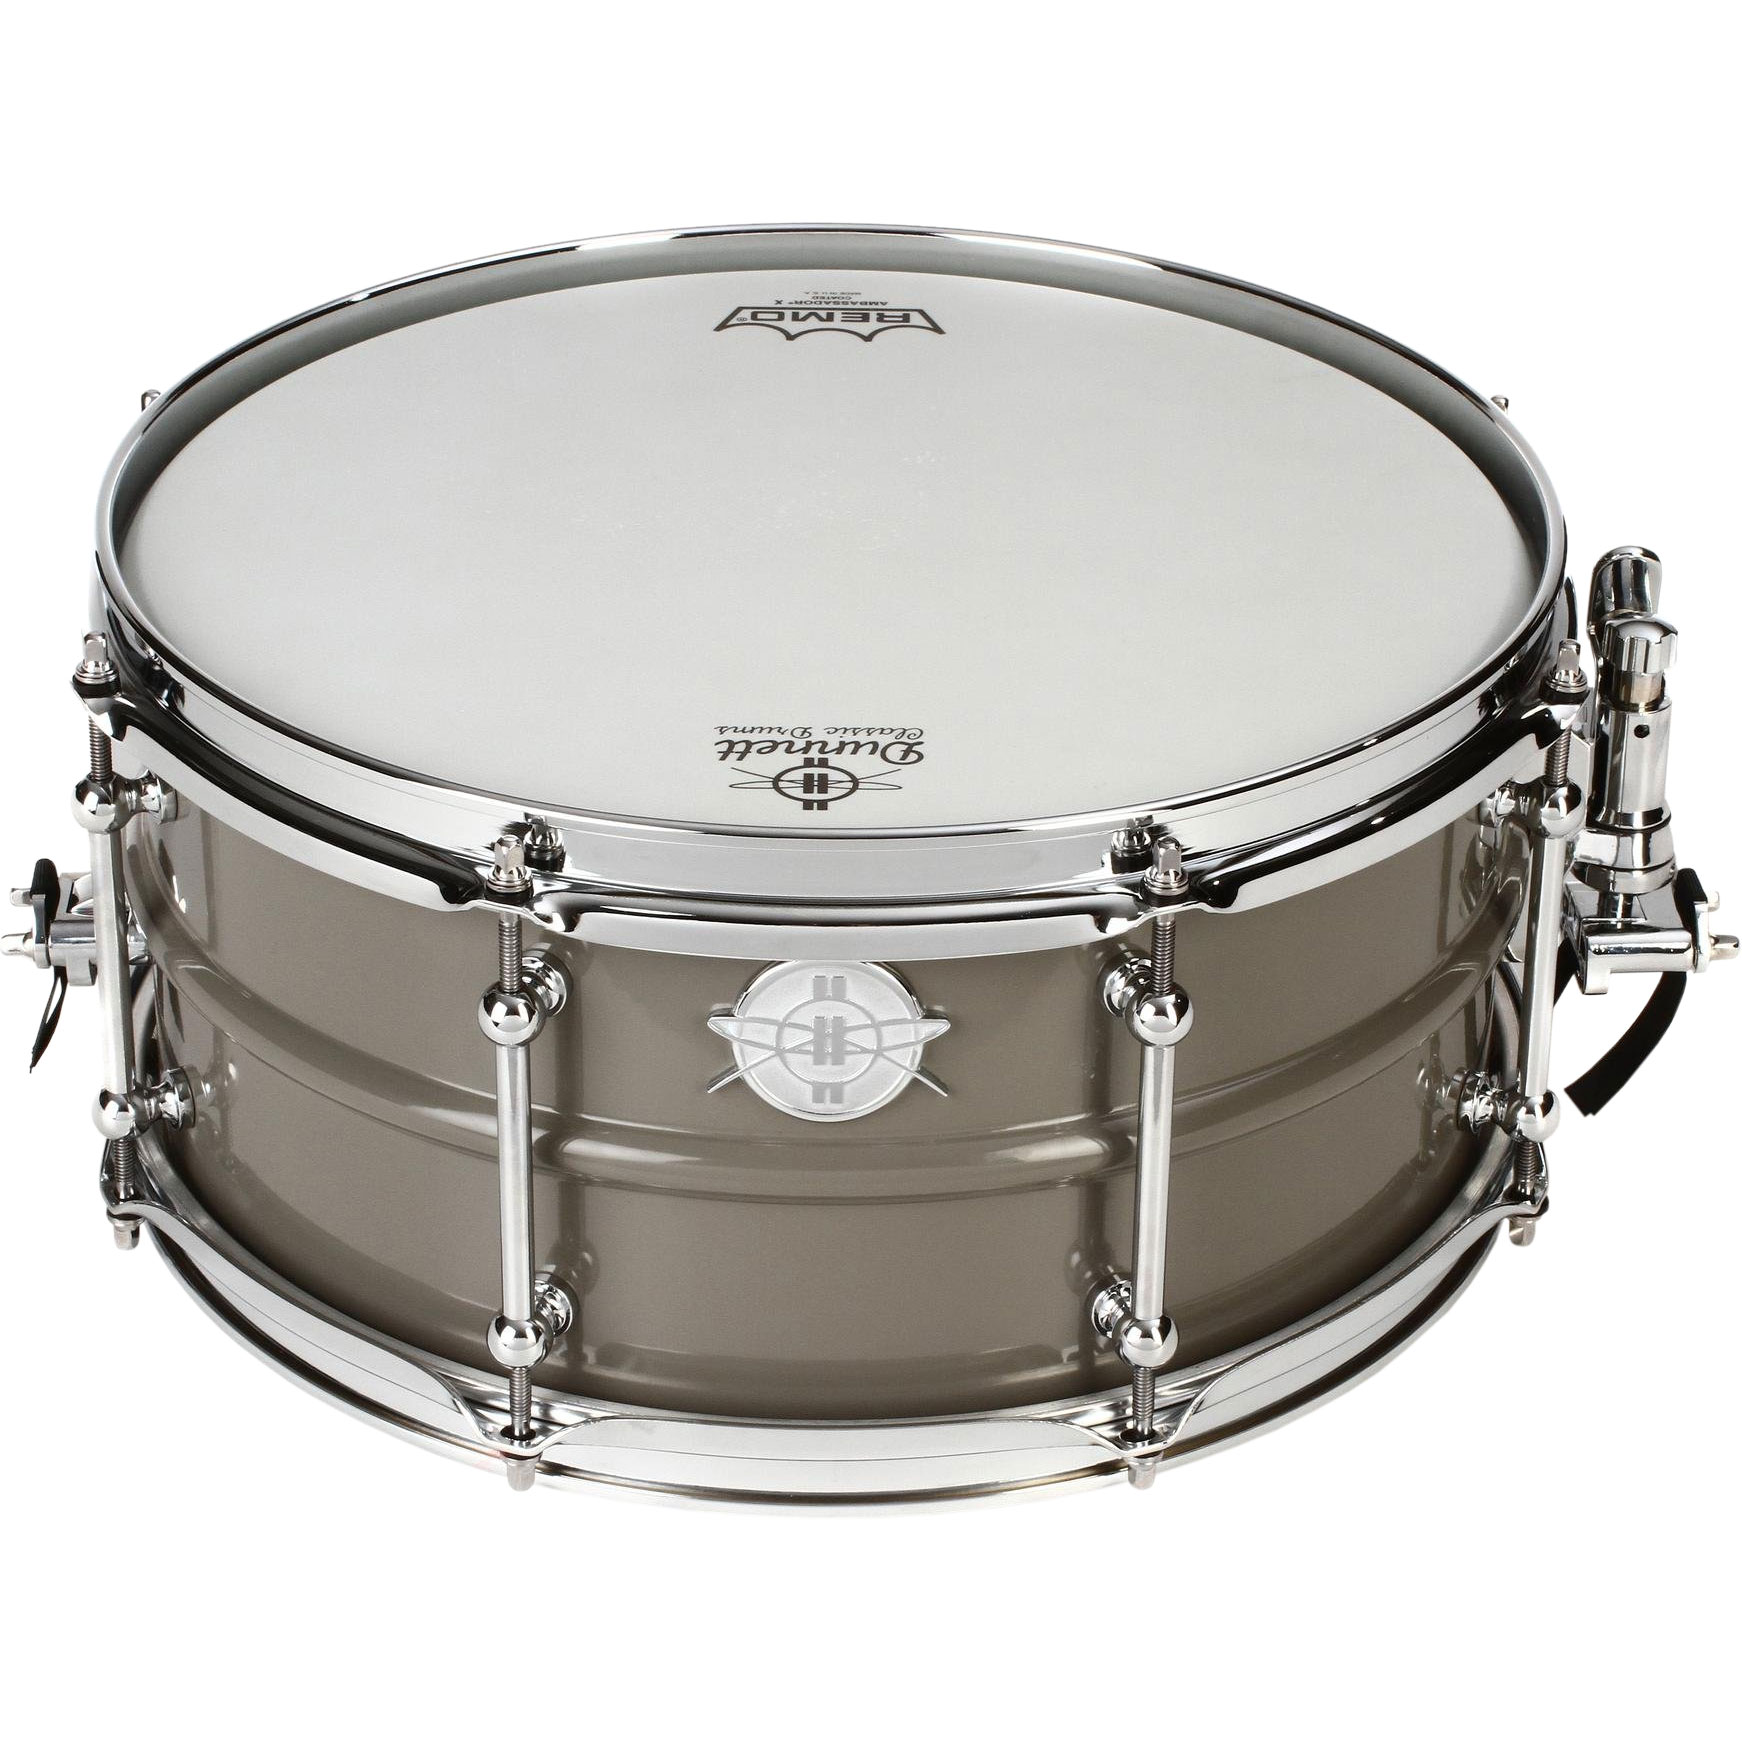 "Dunnett 6.5"" x 14"" Classic Model 2N Carbon Steel Snare Drum"